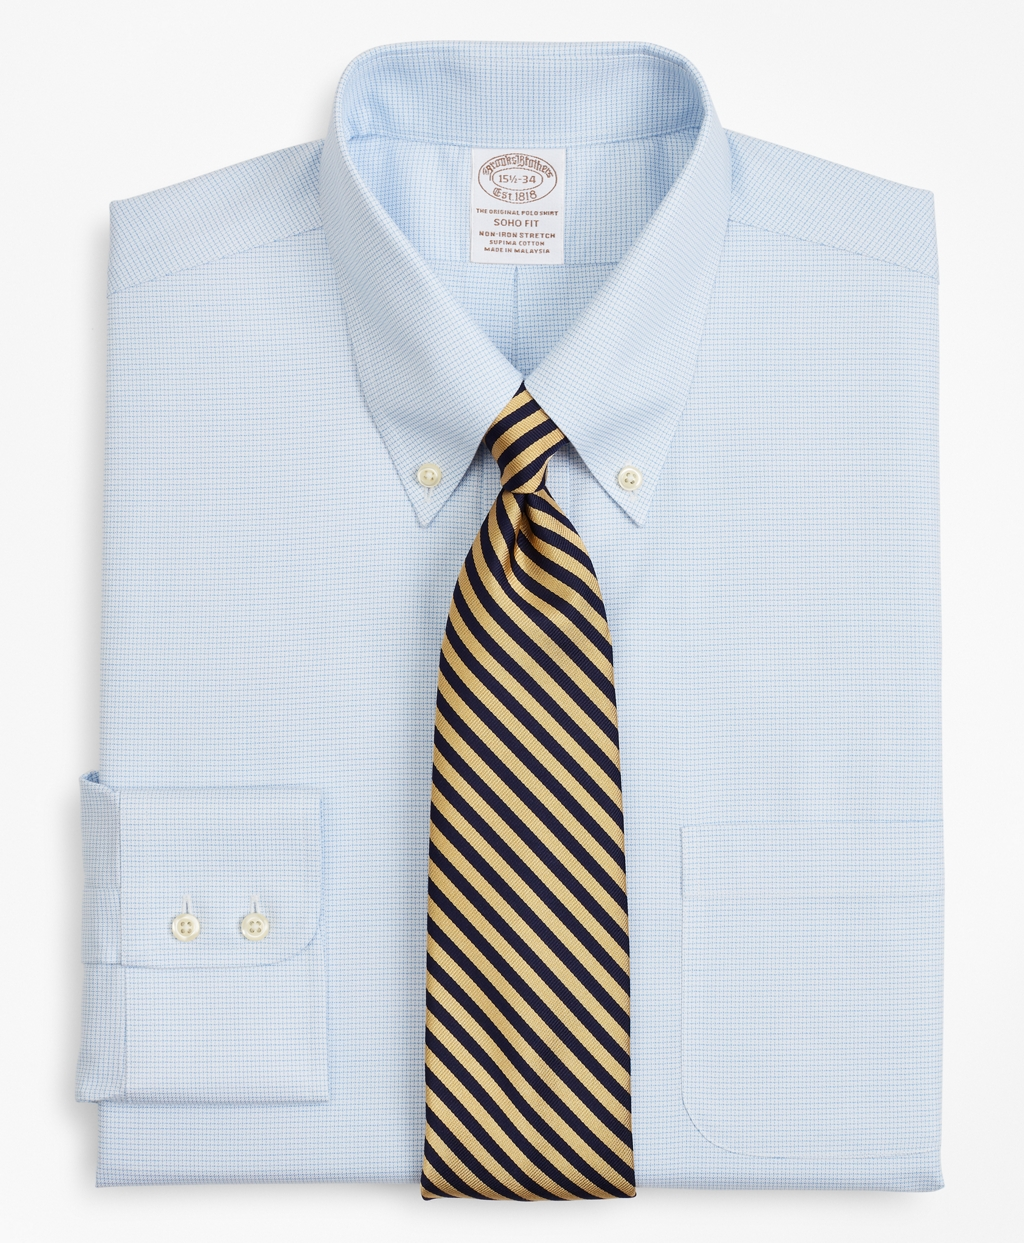 Brooksbrothers Stretch Soho Extra-Slim-Fit Dress Shirt, Non-Iron Twill Button-Down Collar Micro-Check